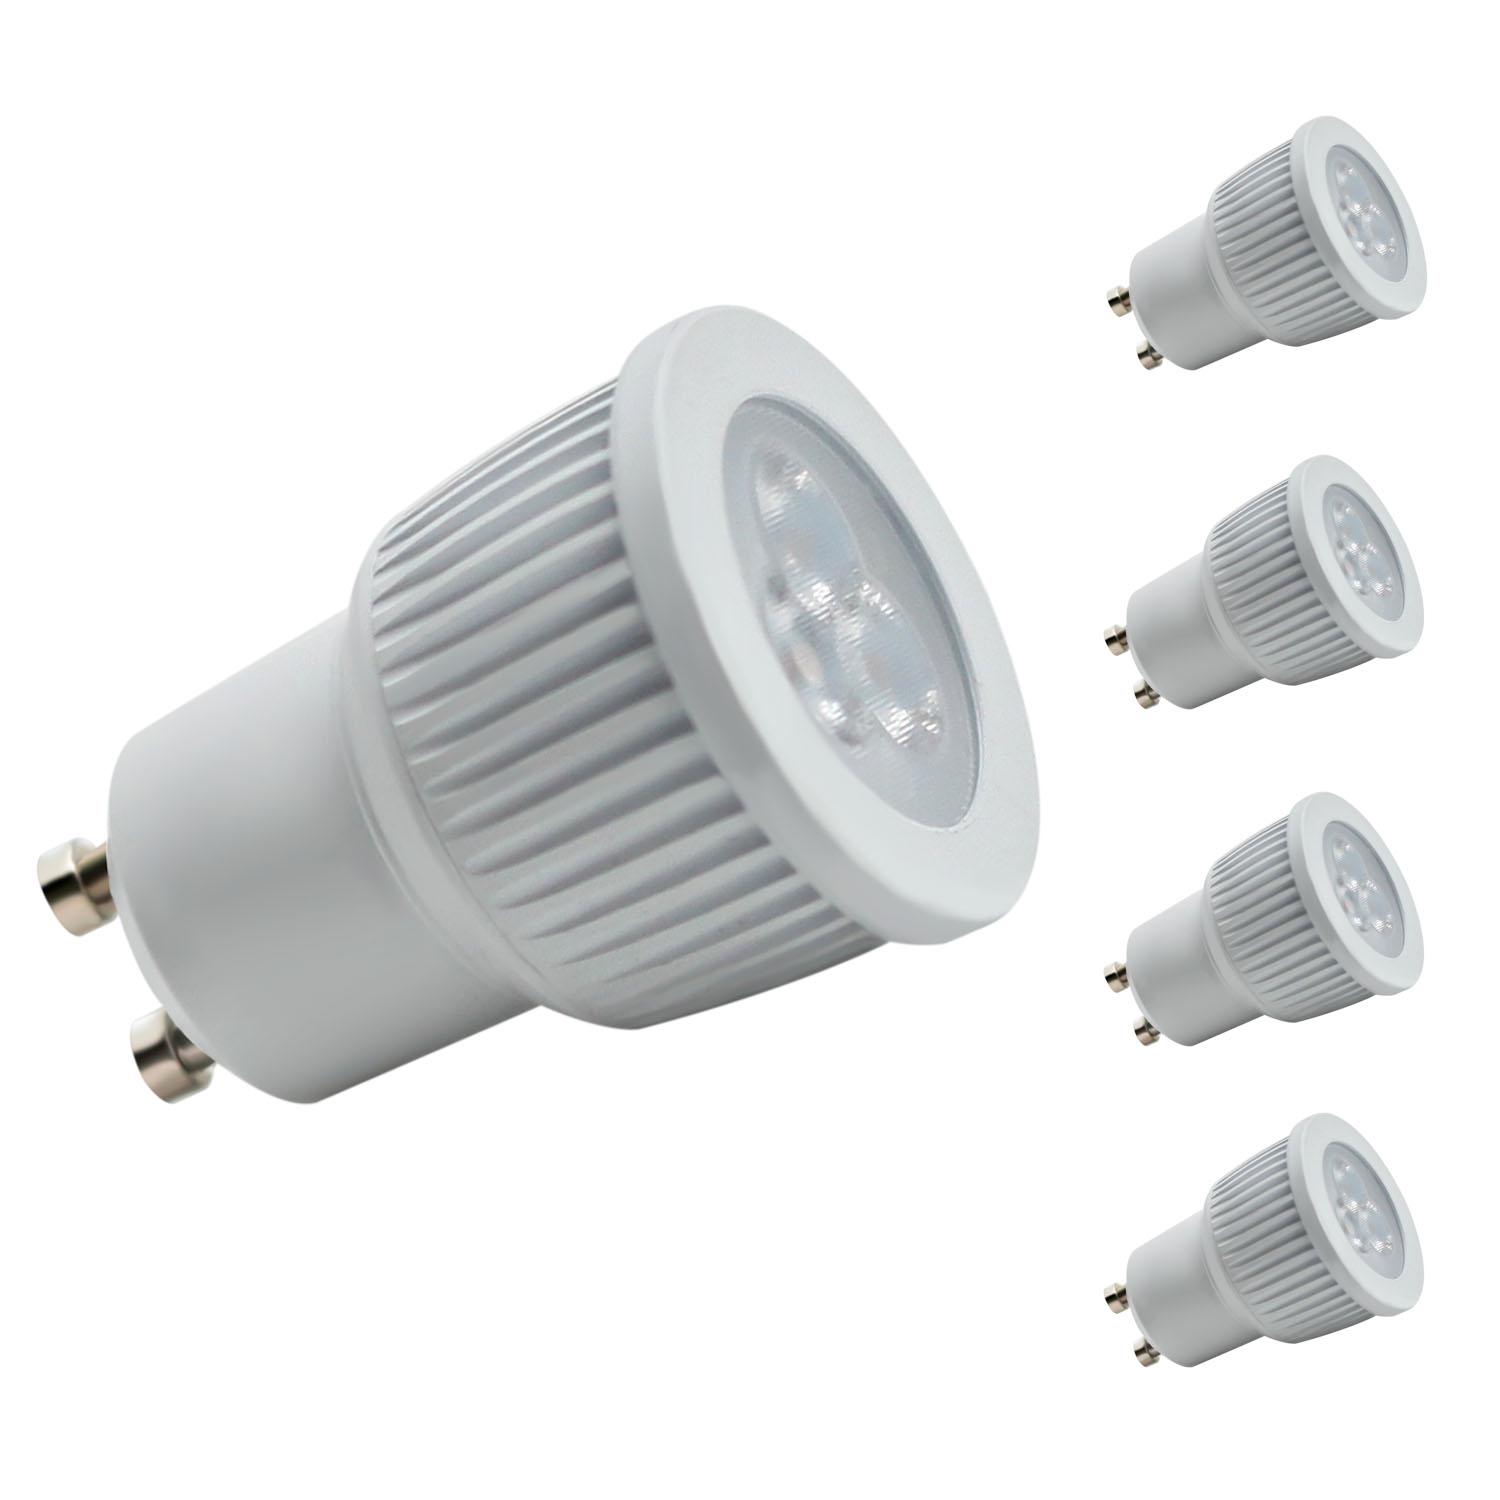 MR11 GU10 LED Bulb for Track Light, 35W Equivalent, Daylight White 6000K, 4-Pack